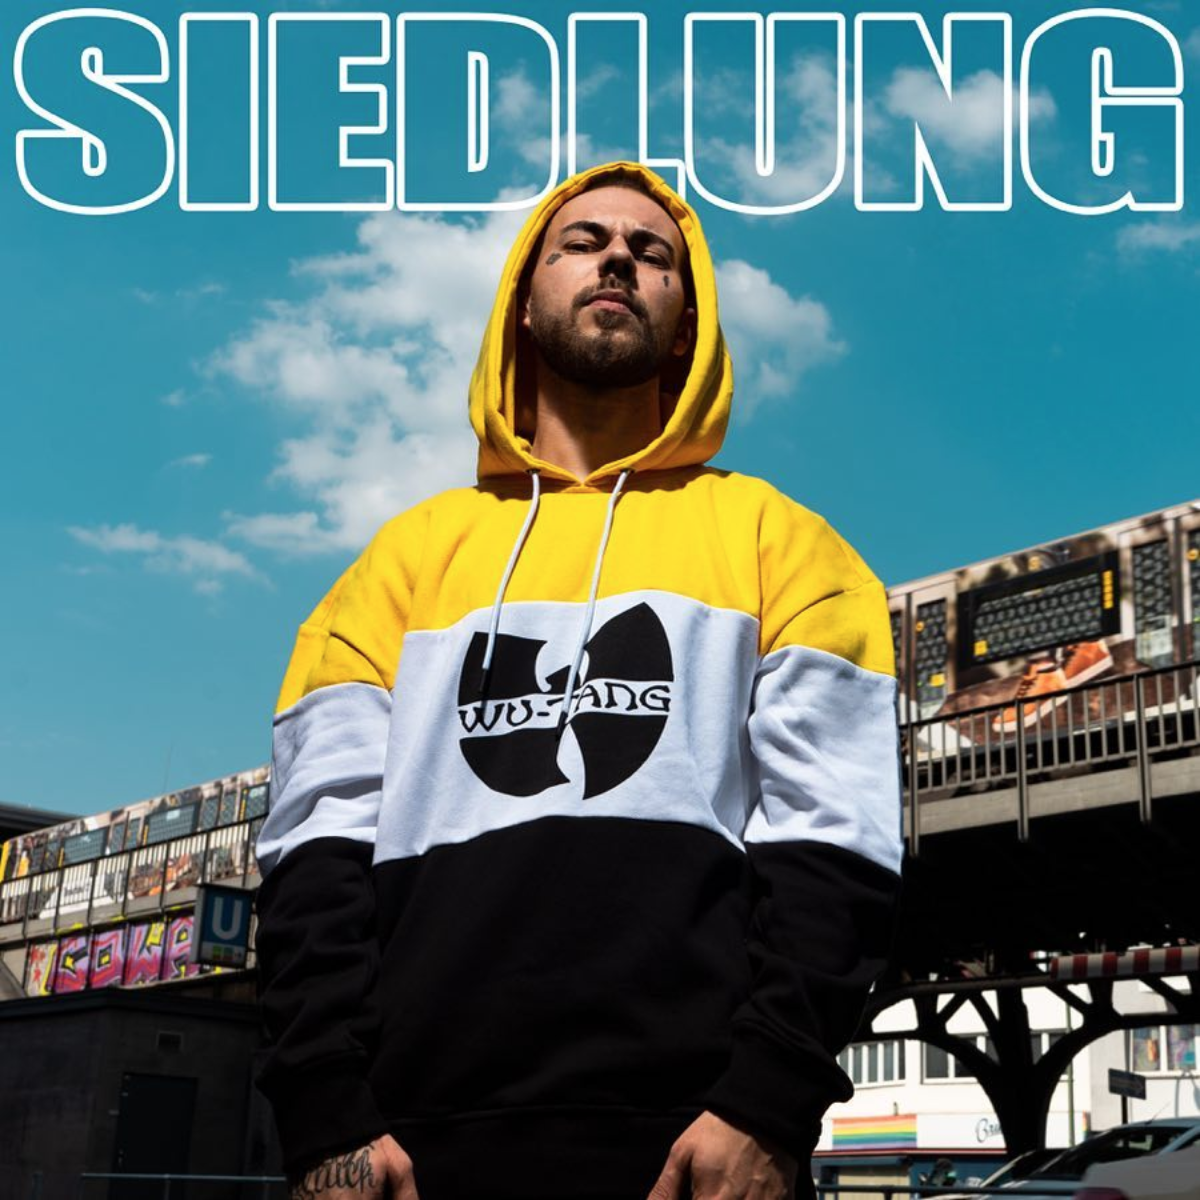 M.O.030 - Siedlung Outfit